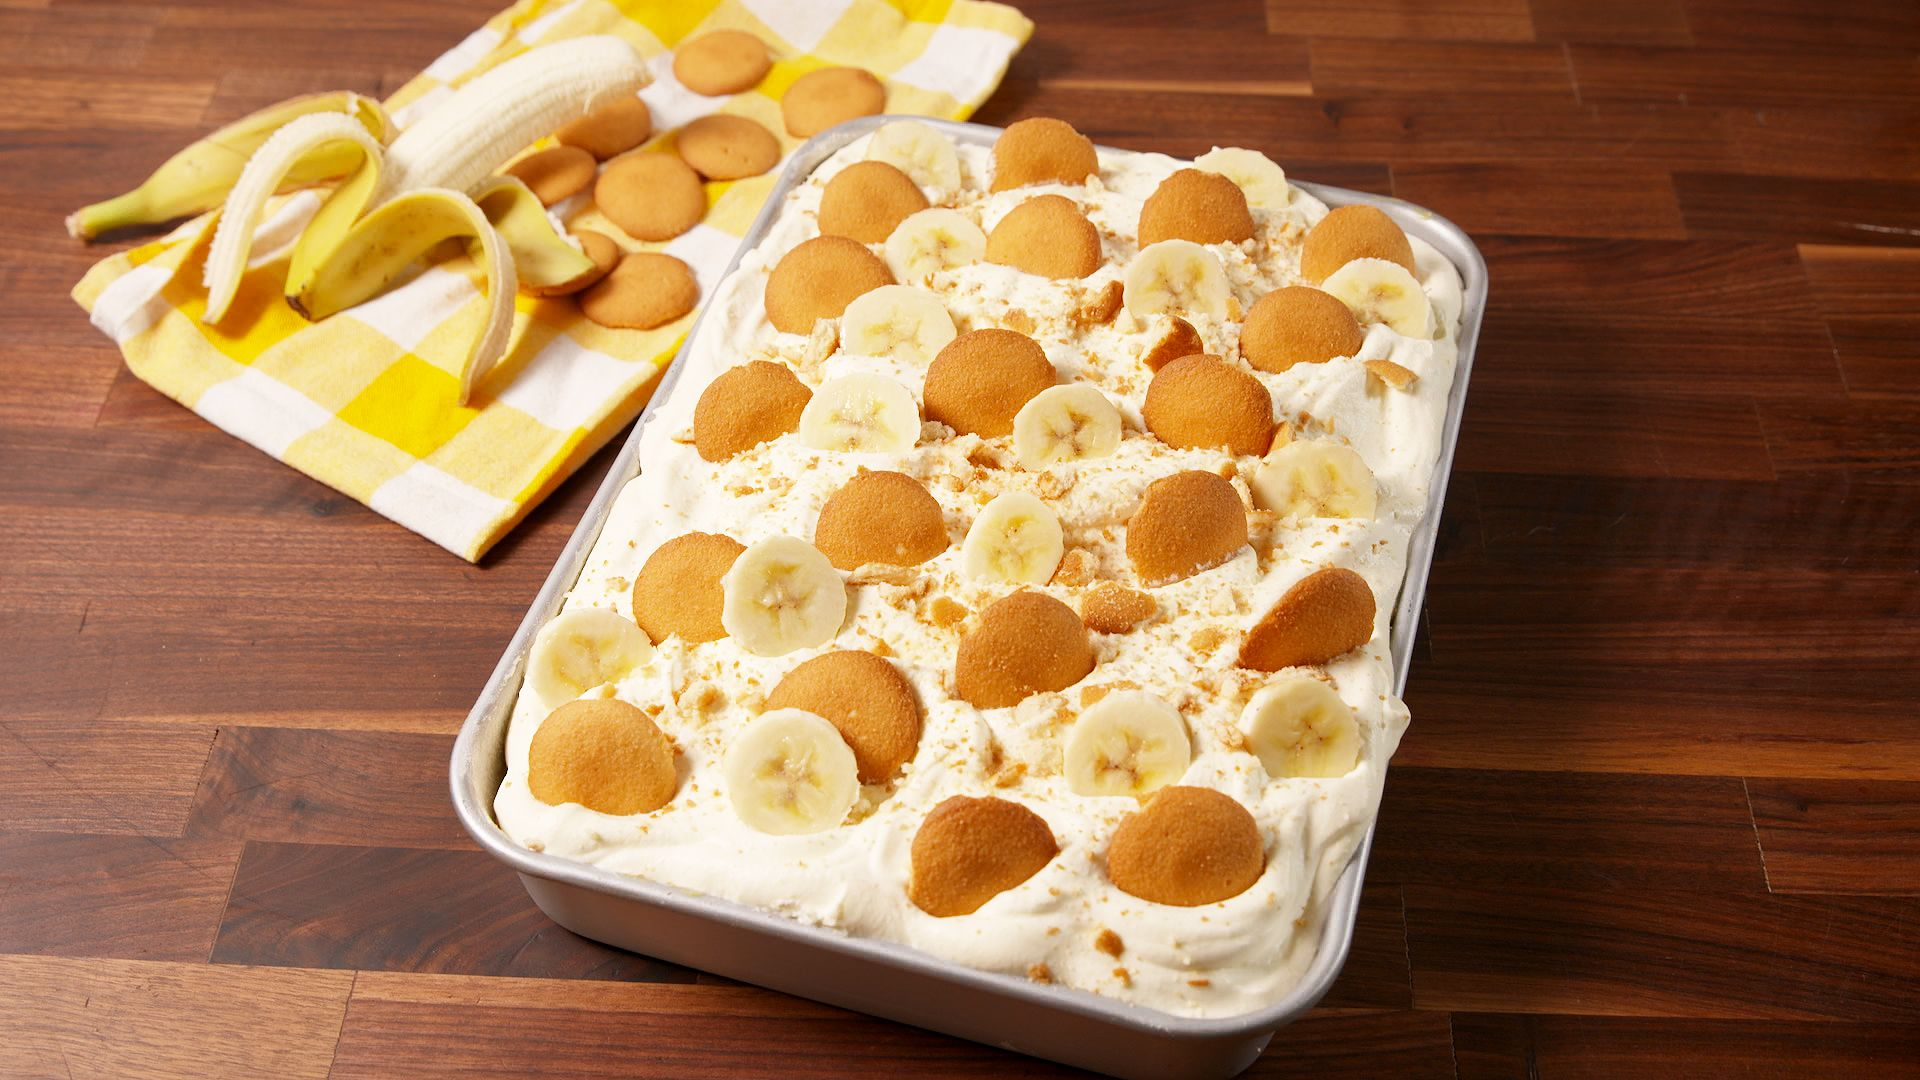 Banana Pudding Hole Cake